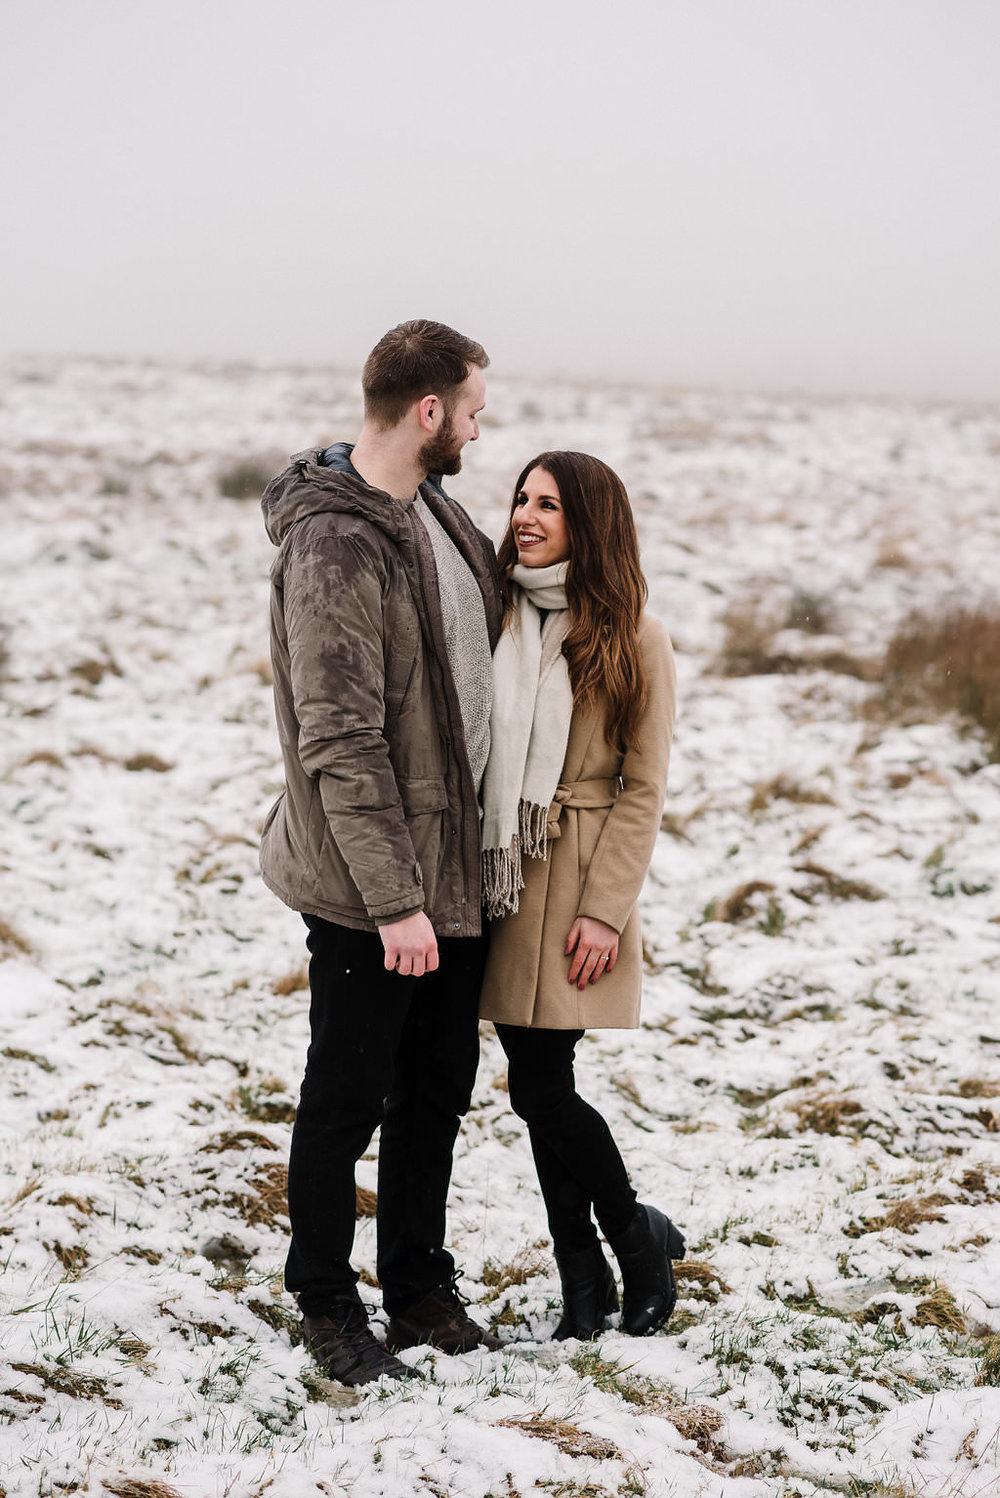 Relaxed shot of couple standing together in the snow